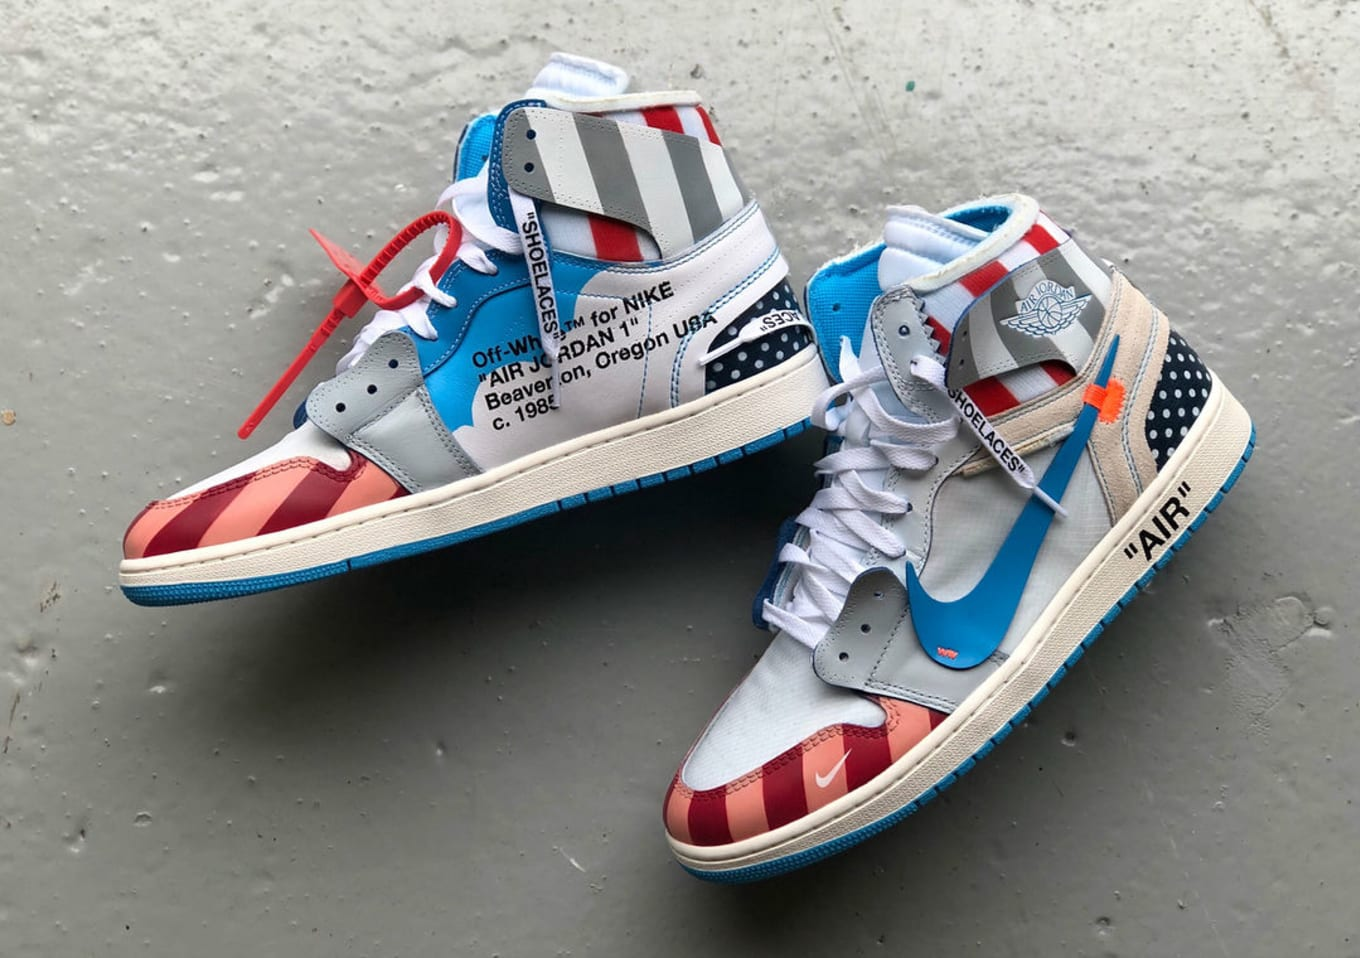 eae7cd8c8aca57 Parra x Off-White x Air Jordan 1 Mache Custom